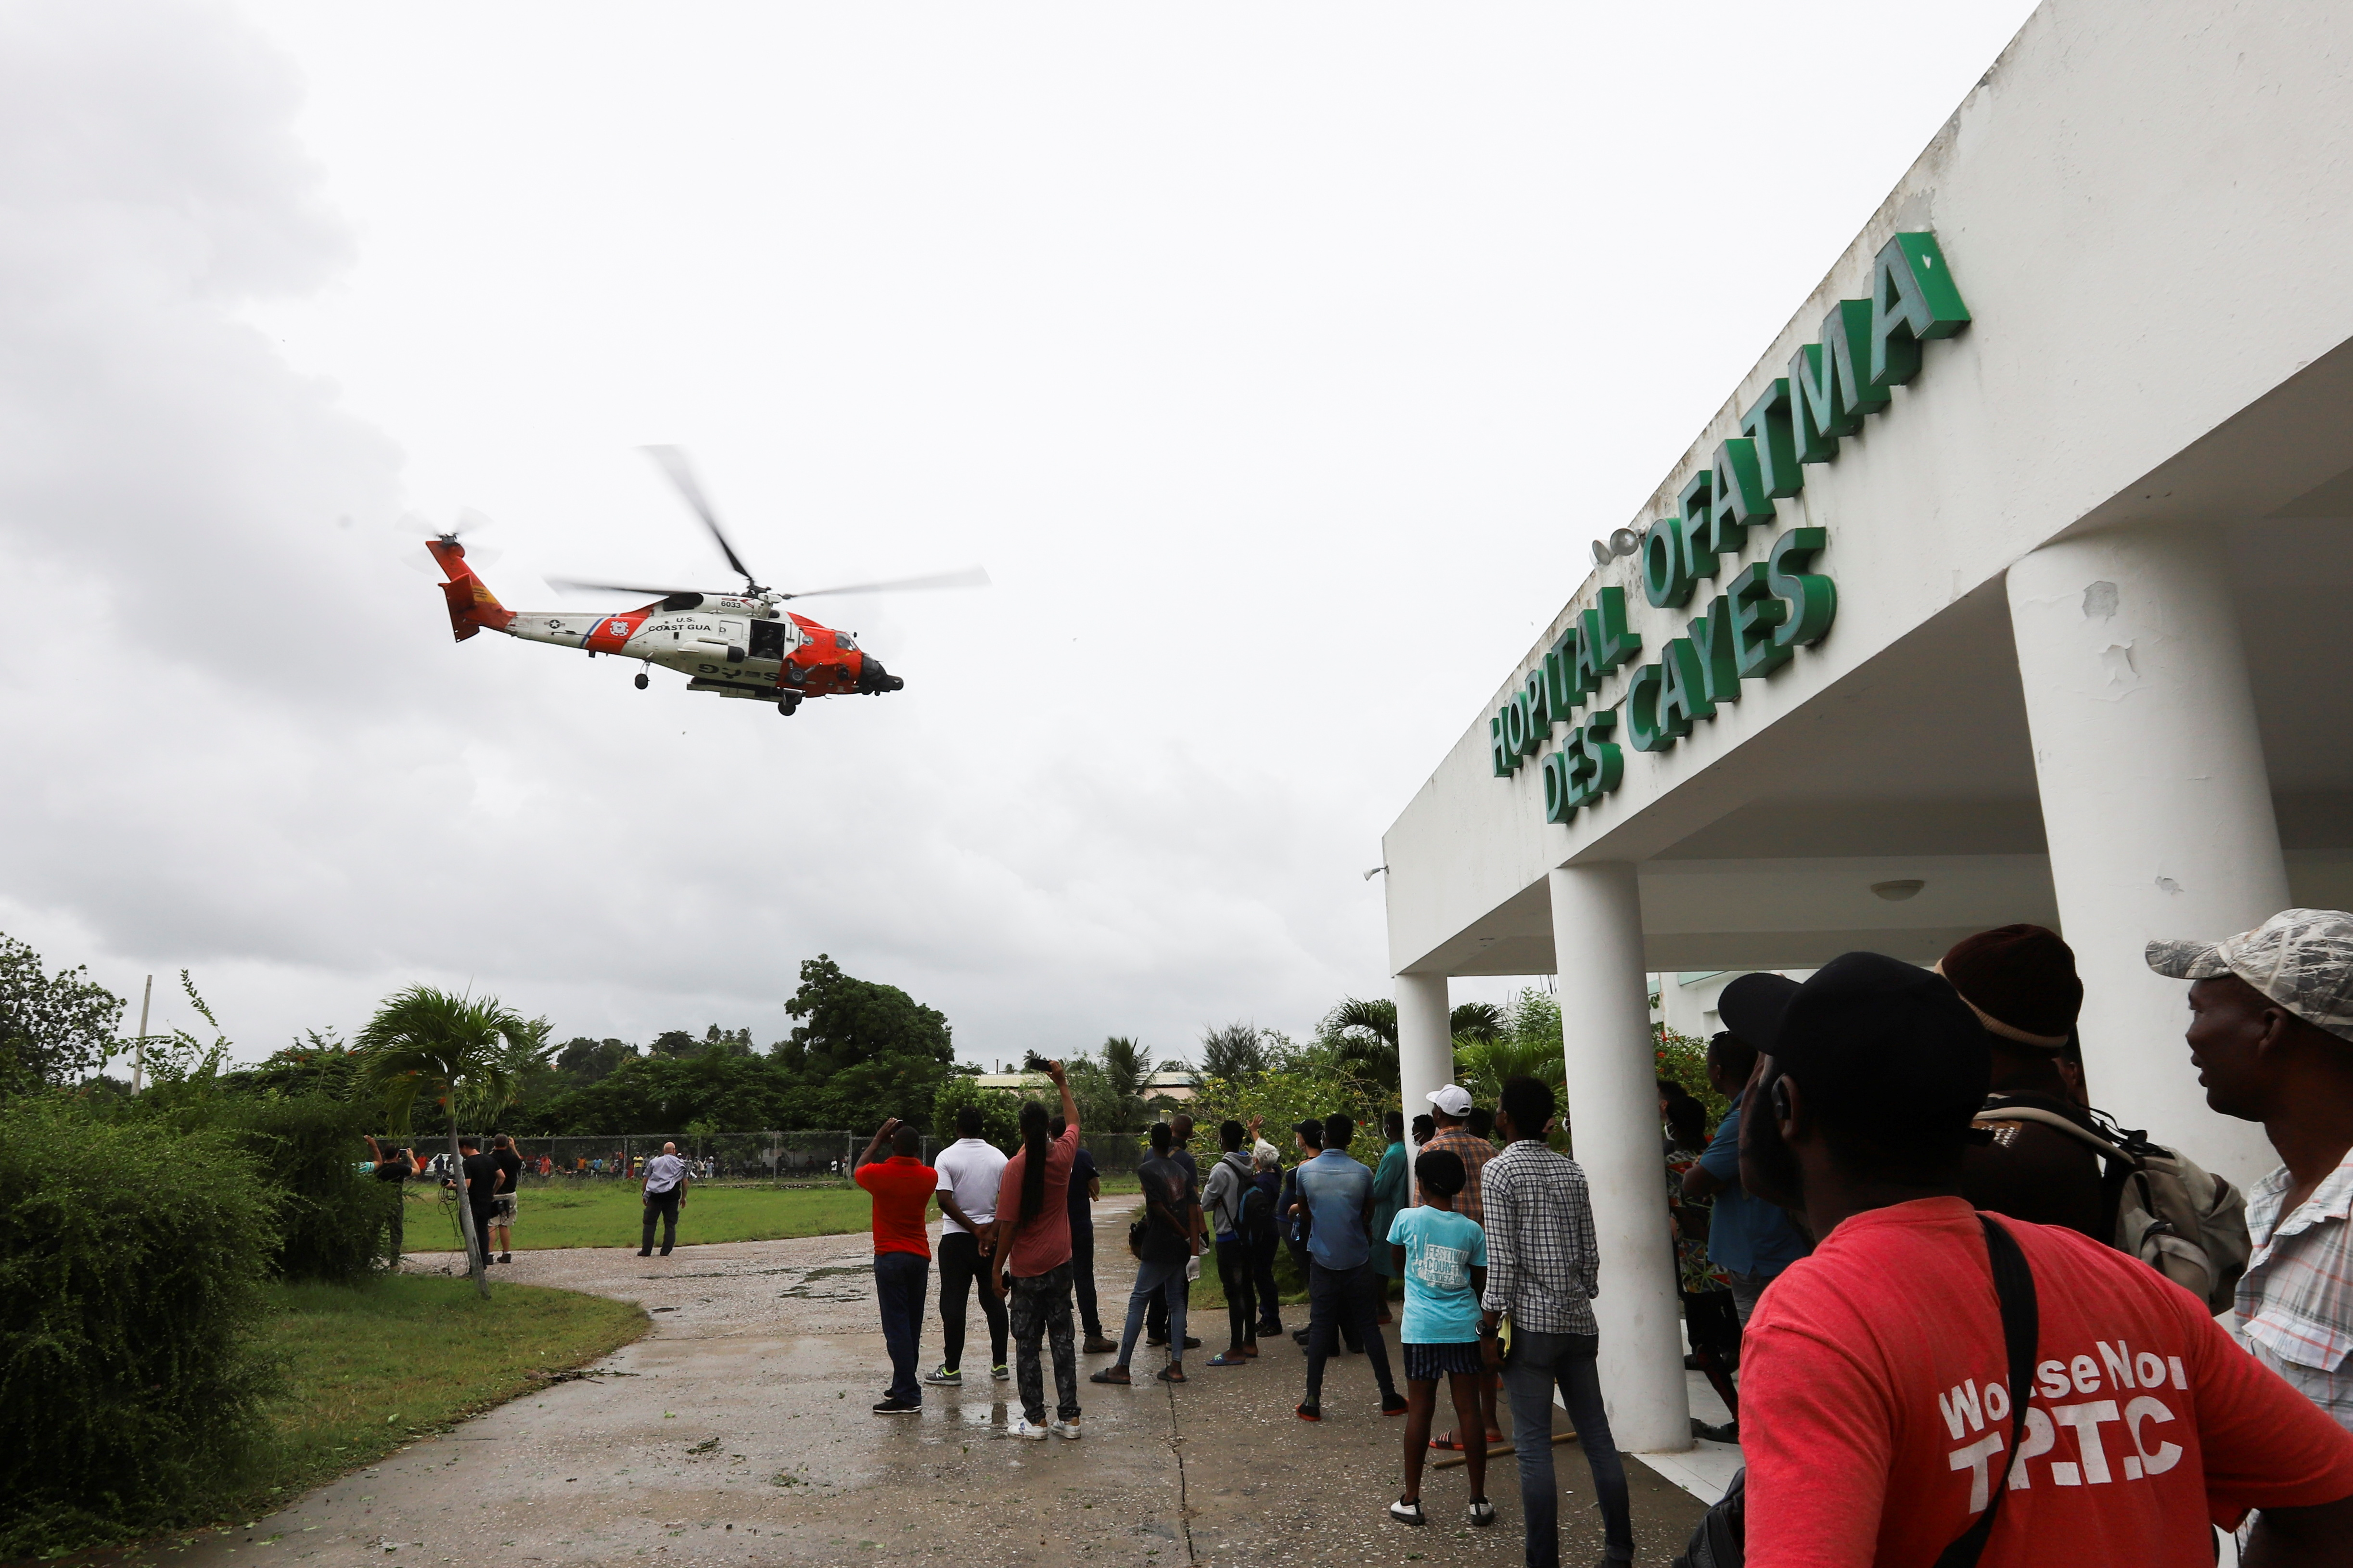 A U.S. Coast Guard helicopter lifts off during a medical evacuation of people injured in Saturday's 7.2 magnitude earthquake, in Les Cayes, Haiti, August 17, 2021. REUTERS/Estailove St-Val